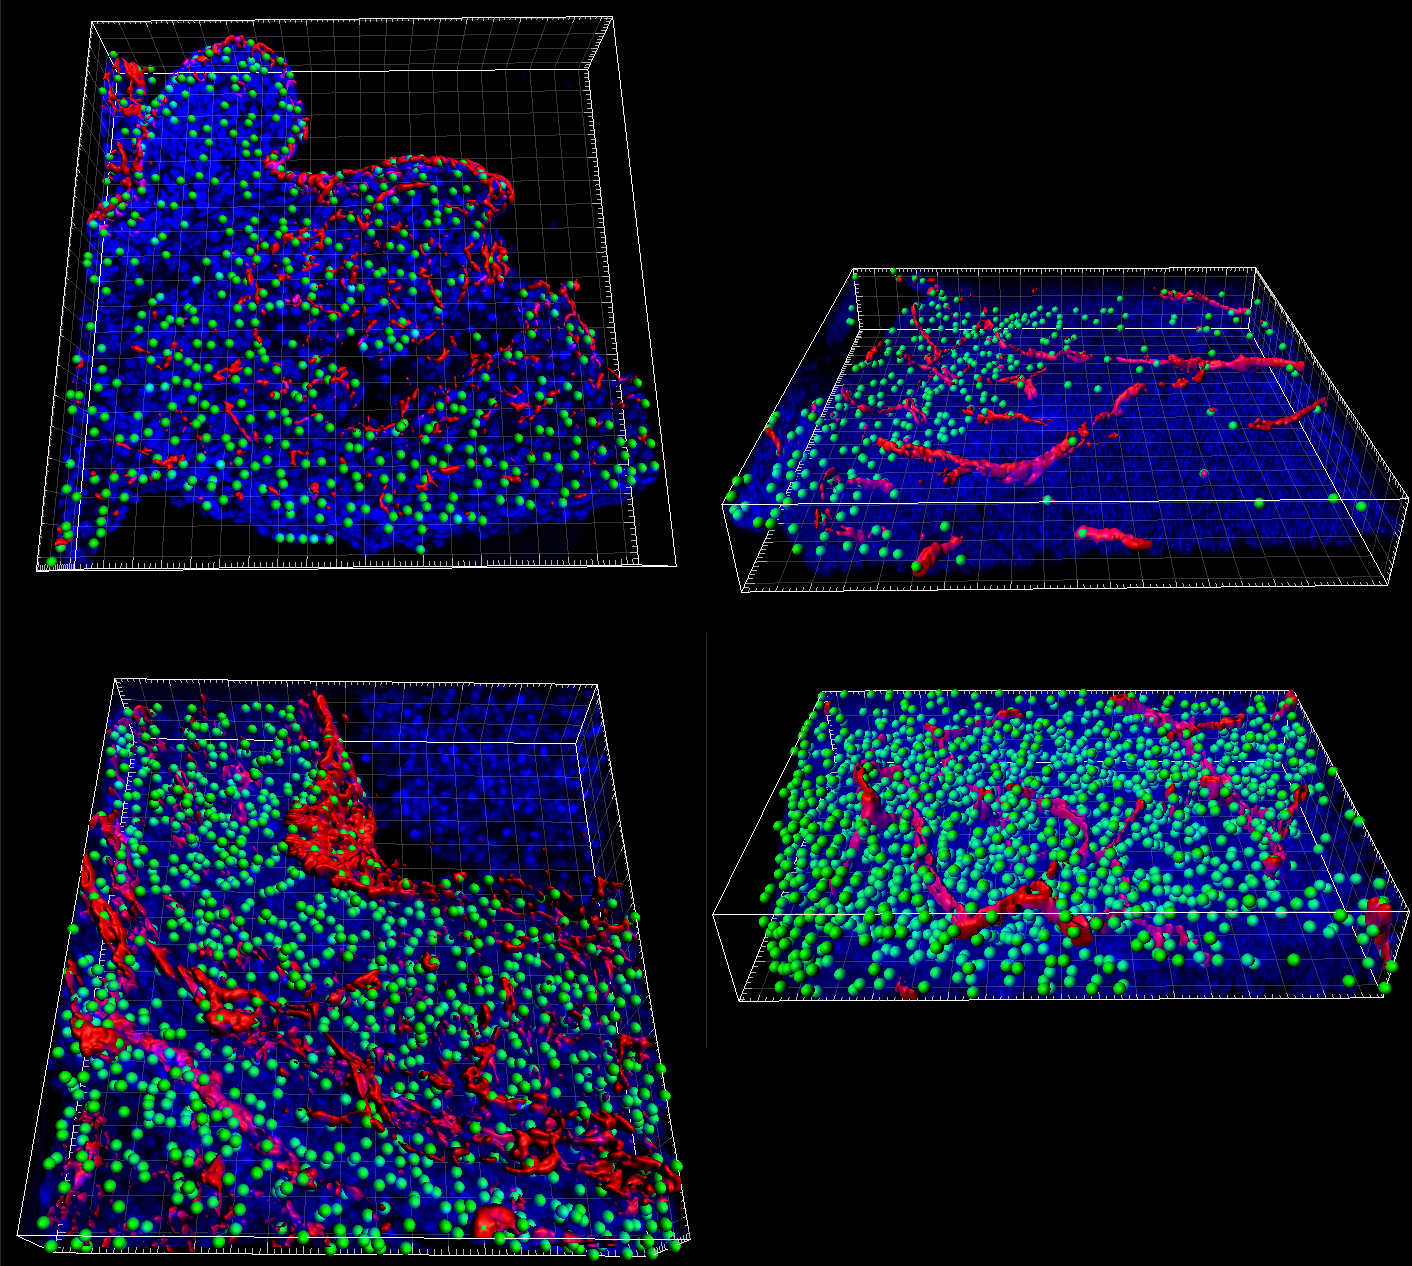 Thick sections (top) and reconstructed serial sections (bottom) of a mouse heart region (left) and mouse brain region (right) in comparison, showing CD31-positive vasculature (red),spot detected Ki67-positive nuclei (green), and DAPI (blue). In particular for the brain regionthe Ki67 signal is much more extensivein the serial sections (bottom right)than in the thick section (top right).  [Image courtesy of Sho Fujisawa,Memorial Sloan Kettering Cancer Center]